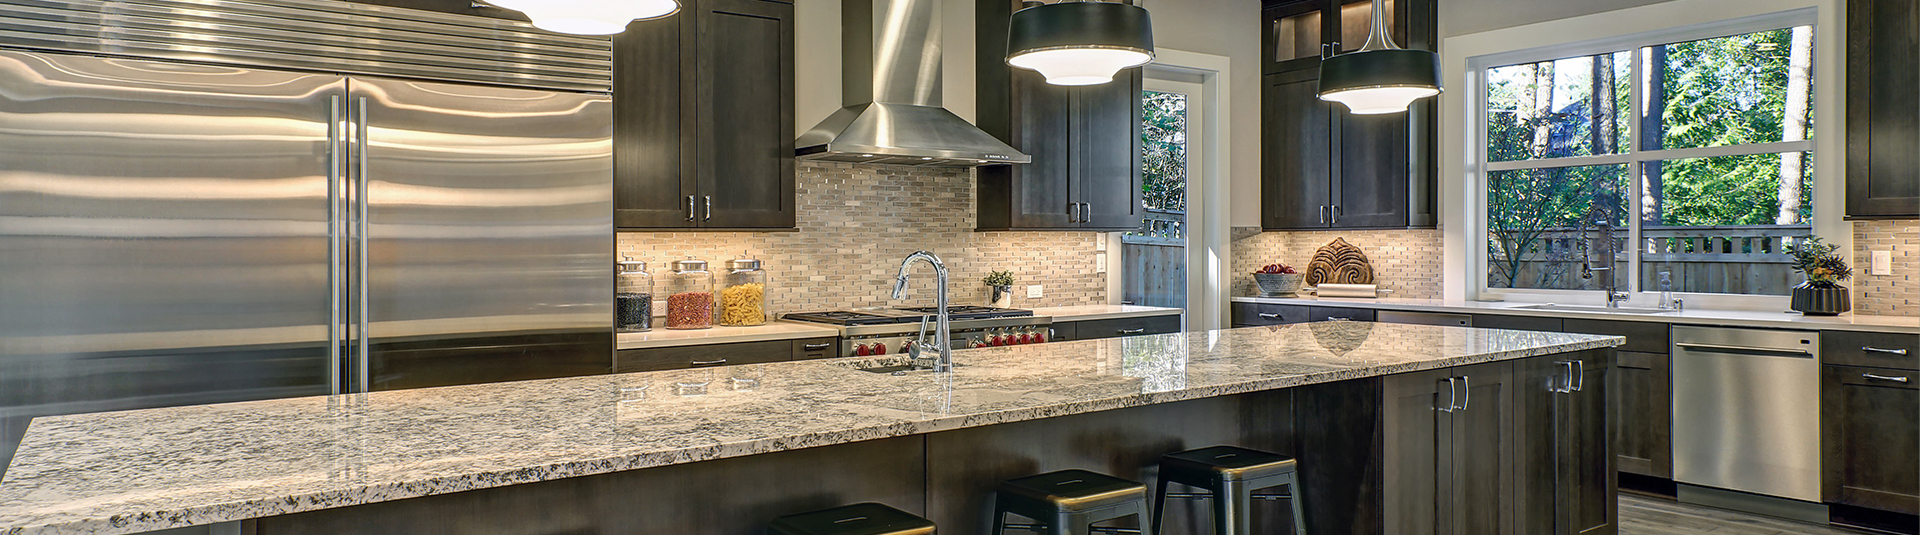 Stone countertops in kitchen with stainless steel appliances